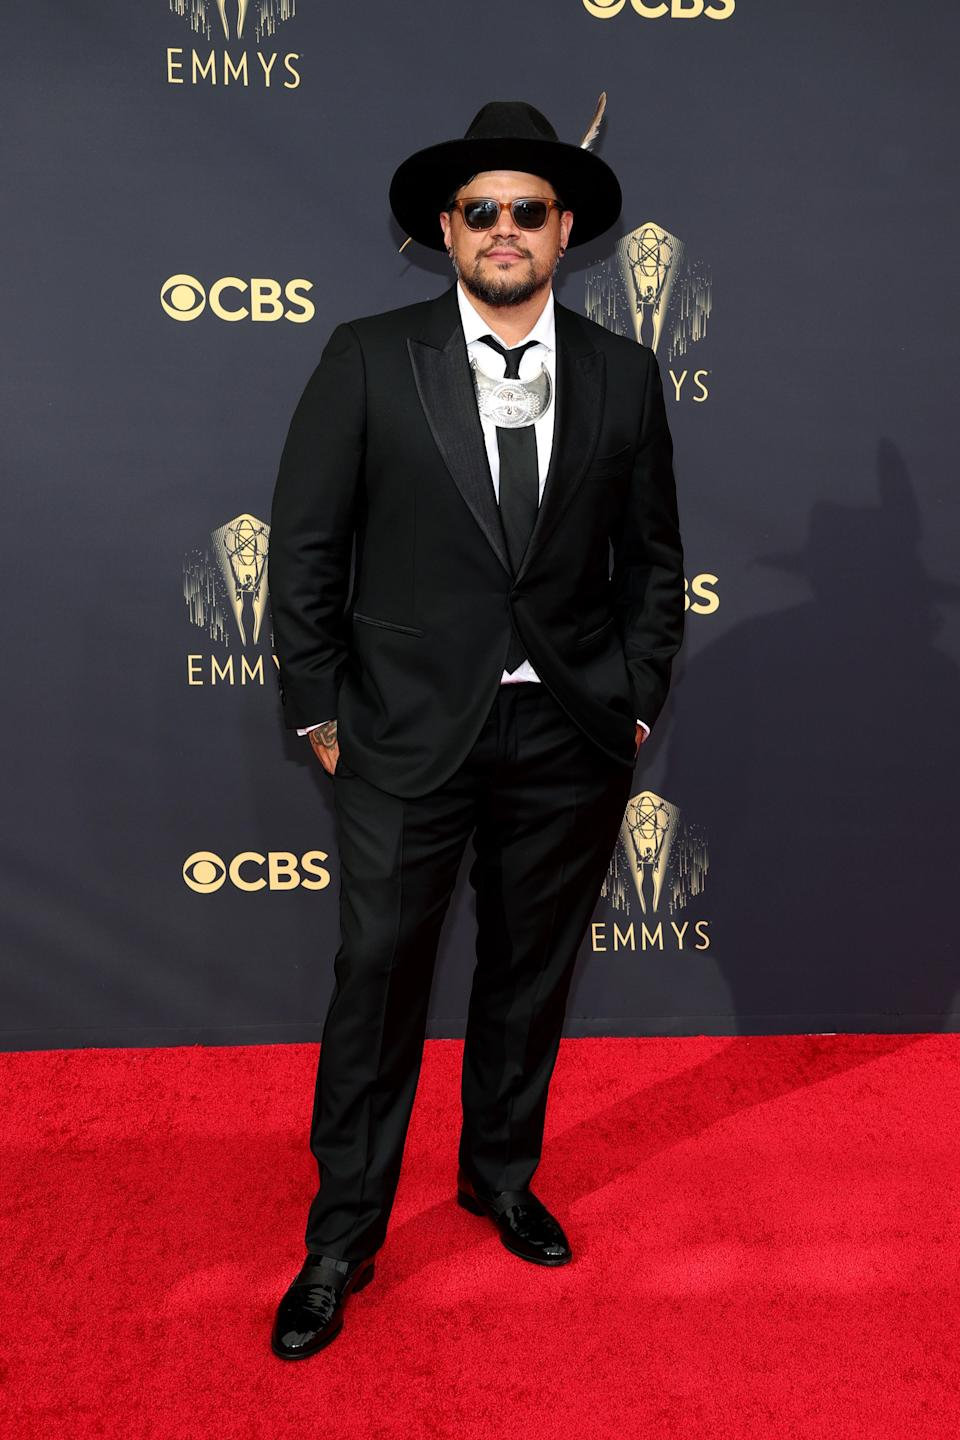 It was all about accessories for filmmaker Sterlin Harjo, who wore sunglasses, a hat, and a silver necklace with his black tux.